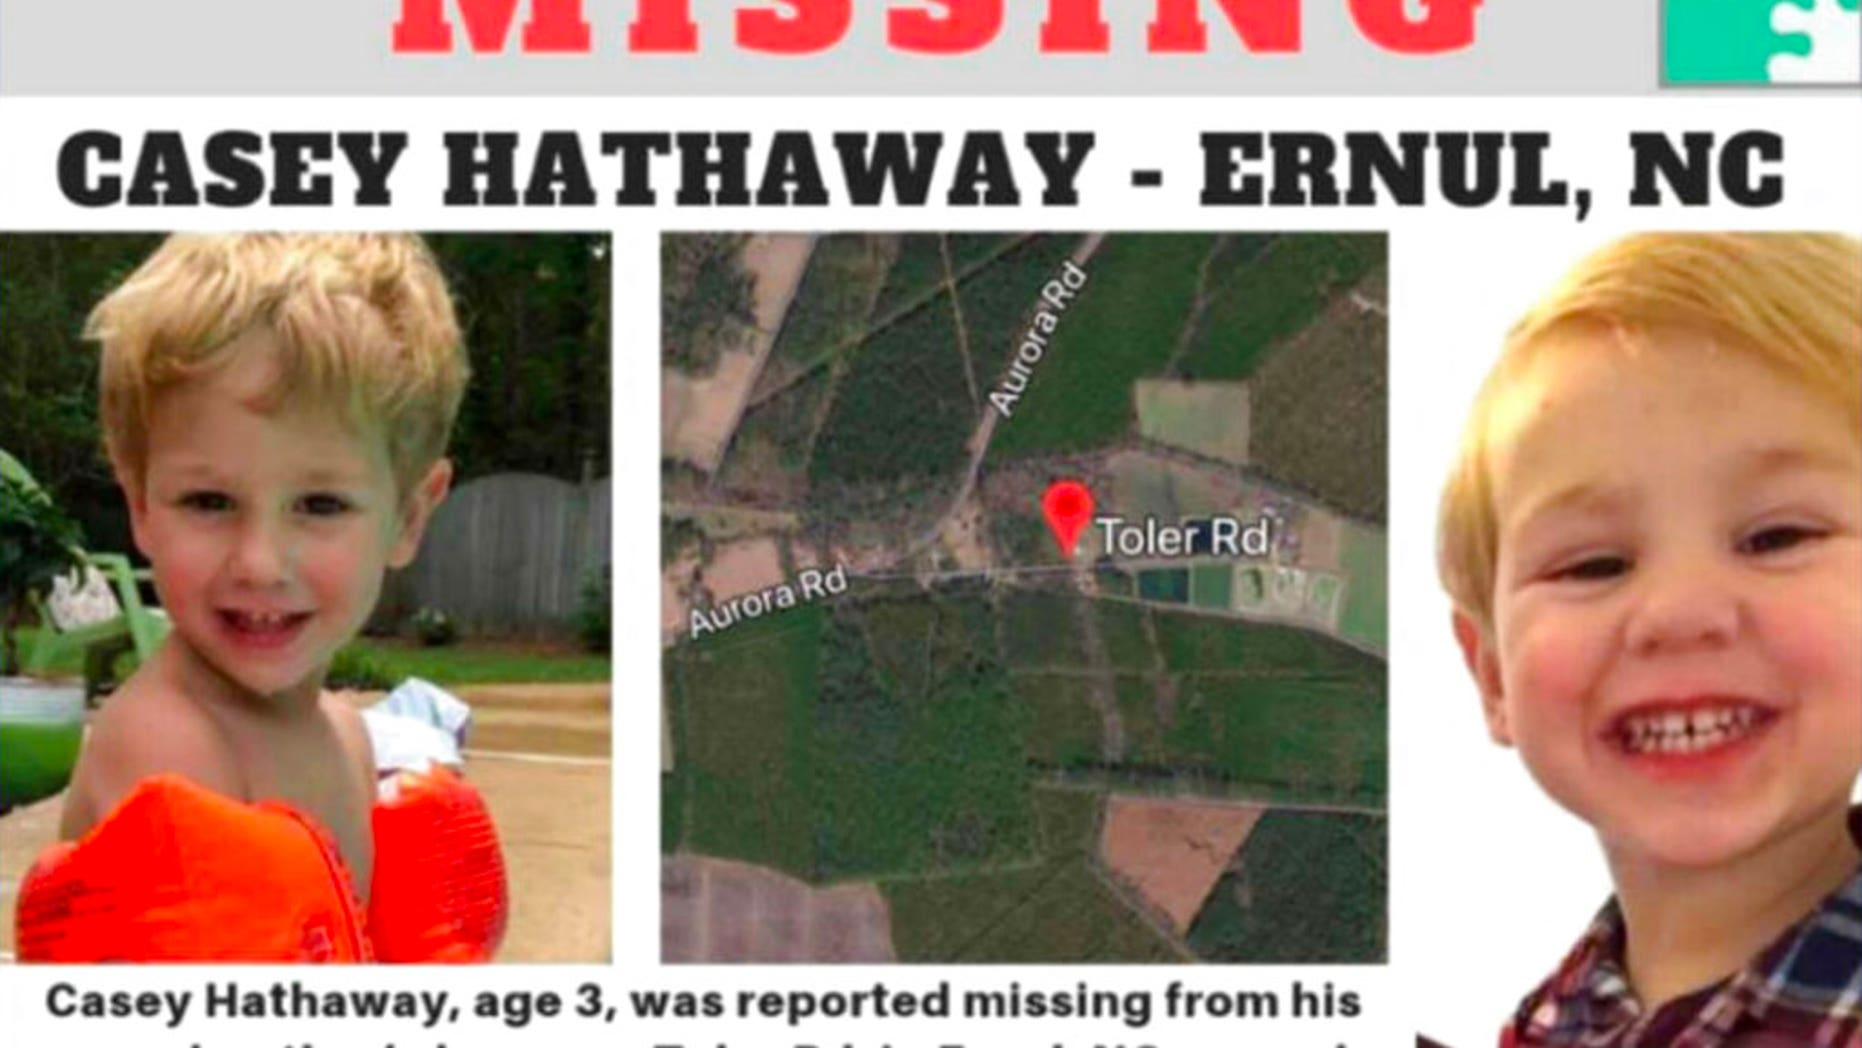 """Authorities say they are treating the disappearance of a 3-year-old North Carolina boy as """"missing child investigation."""""""